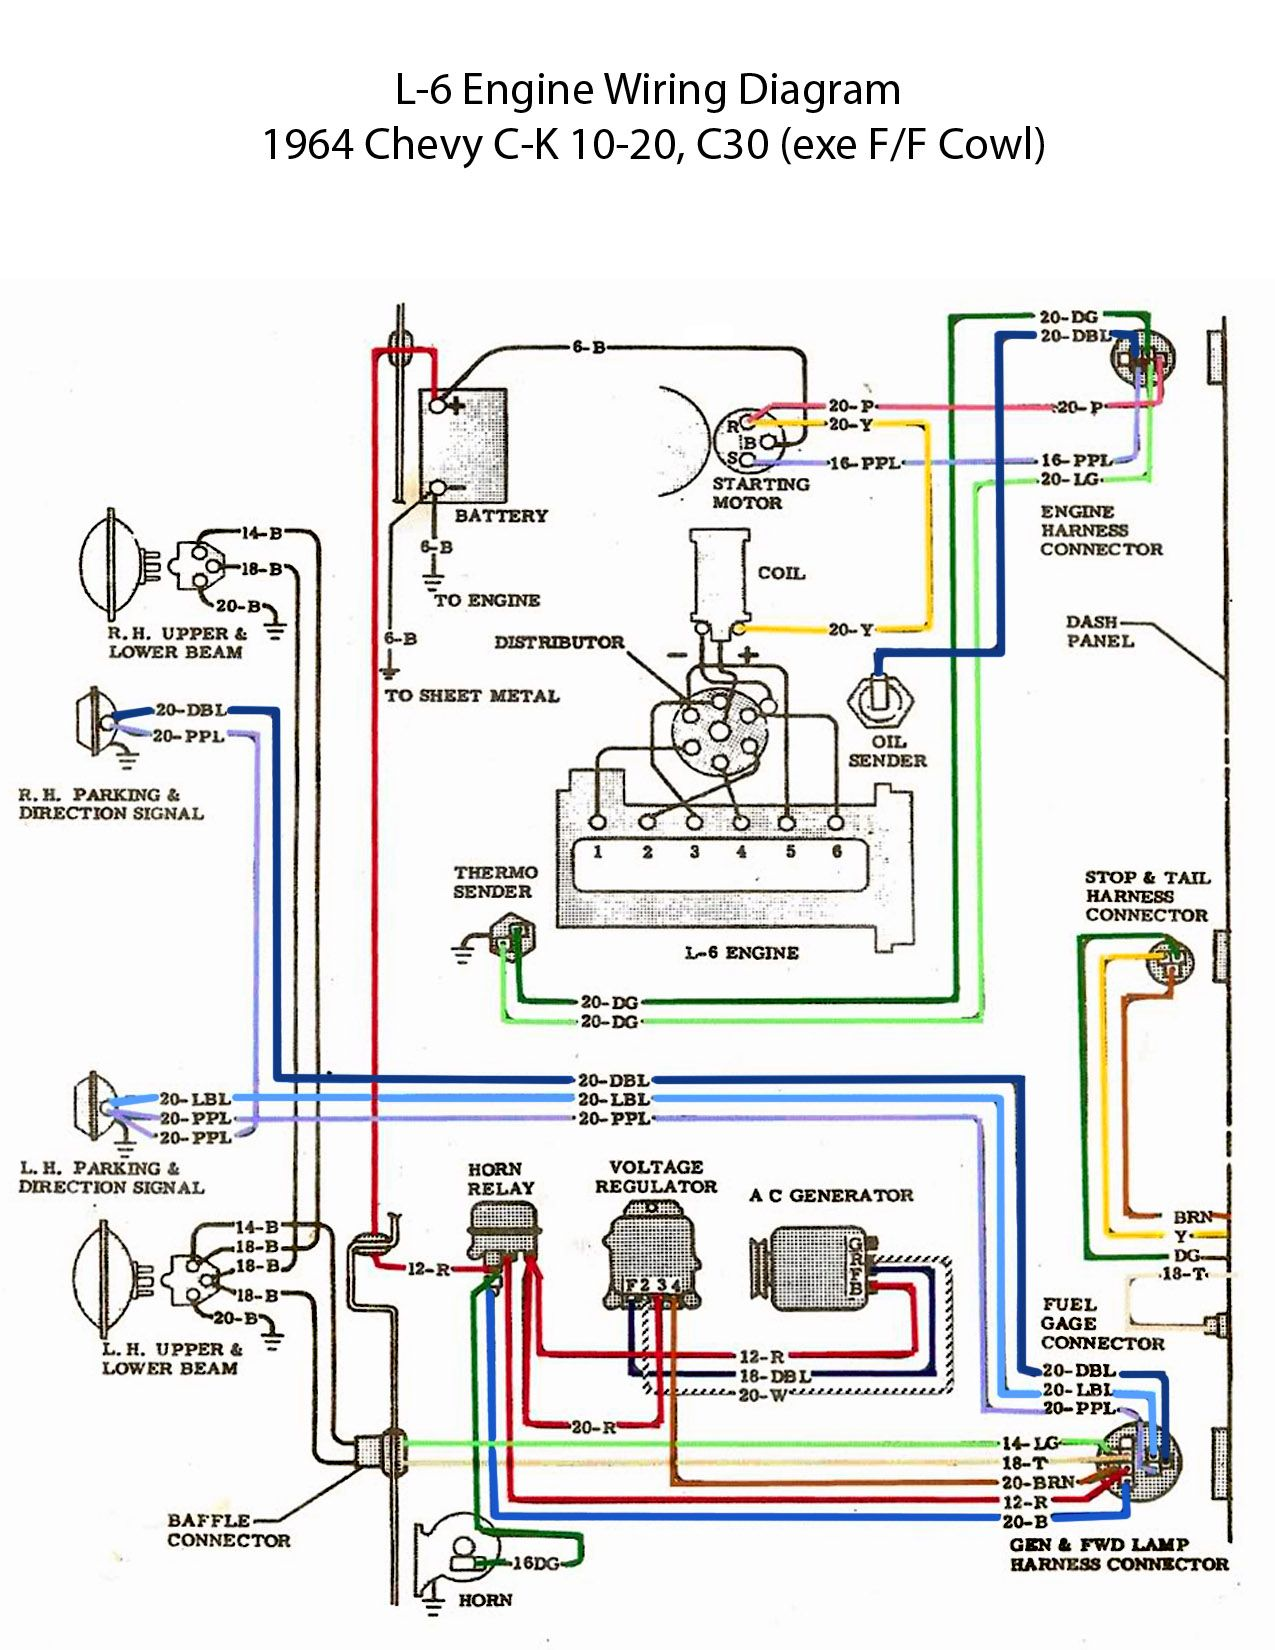 52f445b9f6cba1e2ba90979cb5234ed8 electric l 6 engine wiring diagram '60s chevy c10 wiring Residential Electrical Wiring Diagrams at cos-gaming.co